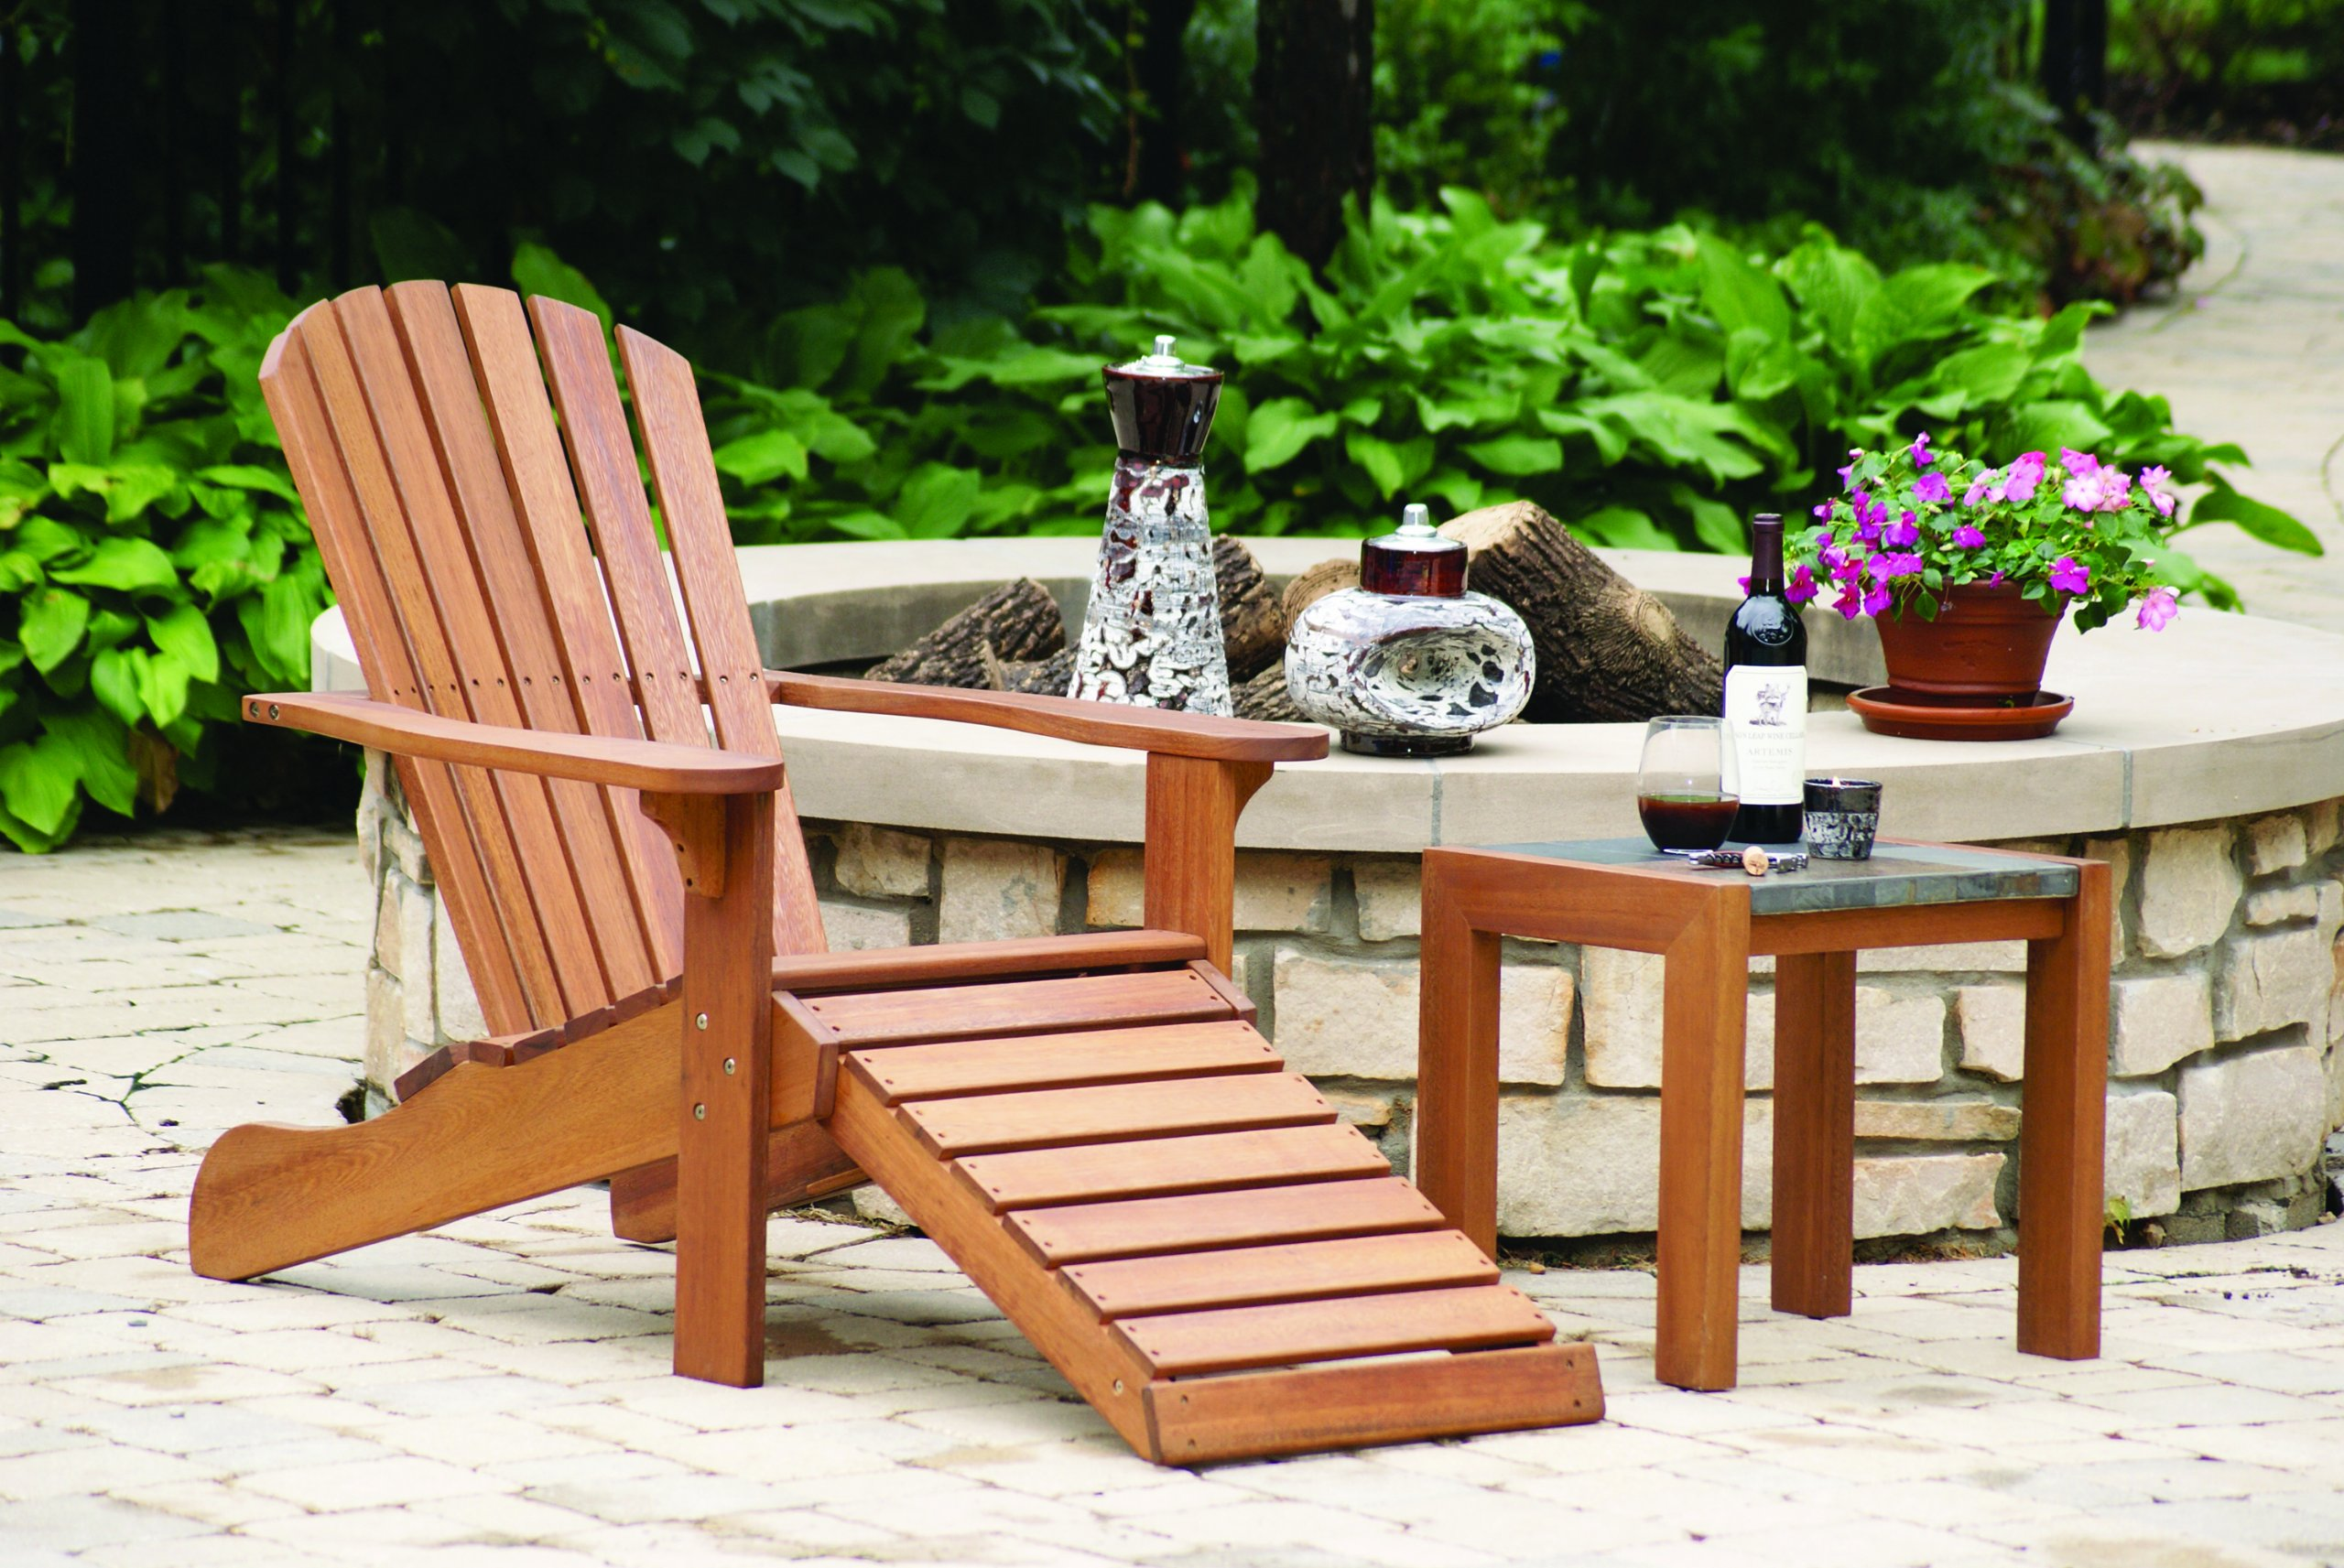 Outdoor Interiors CD3111 Eucalyptus Adirondack Chair and Built In Ottoman by Outdoor Interiors (Image #7)